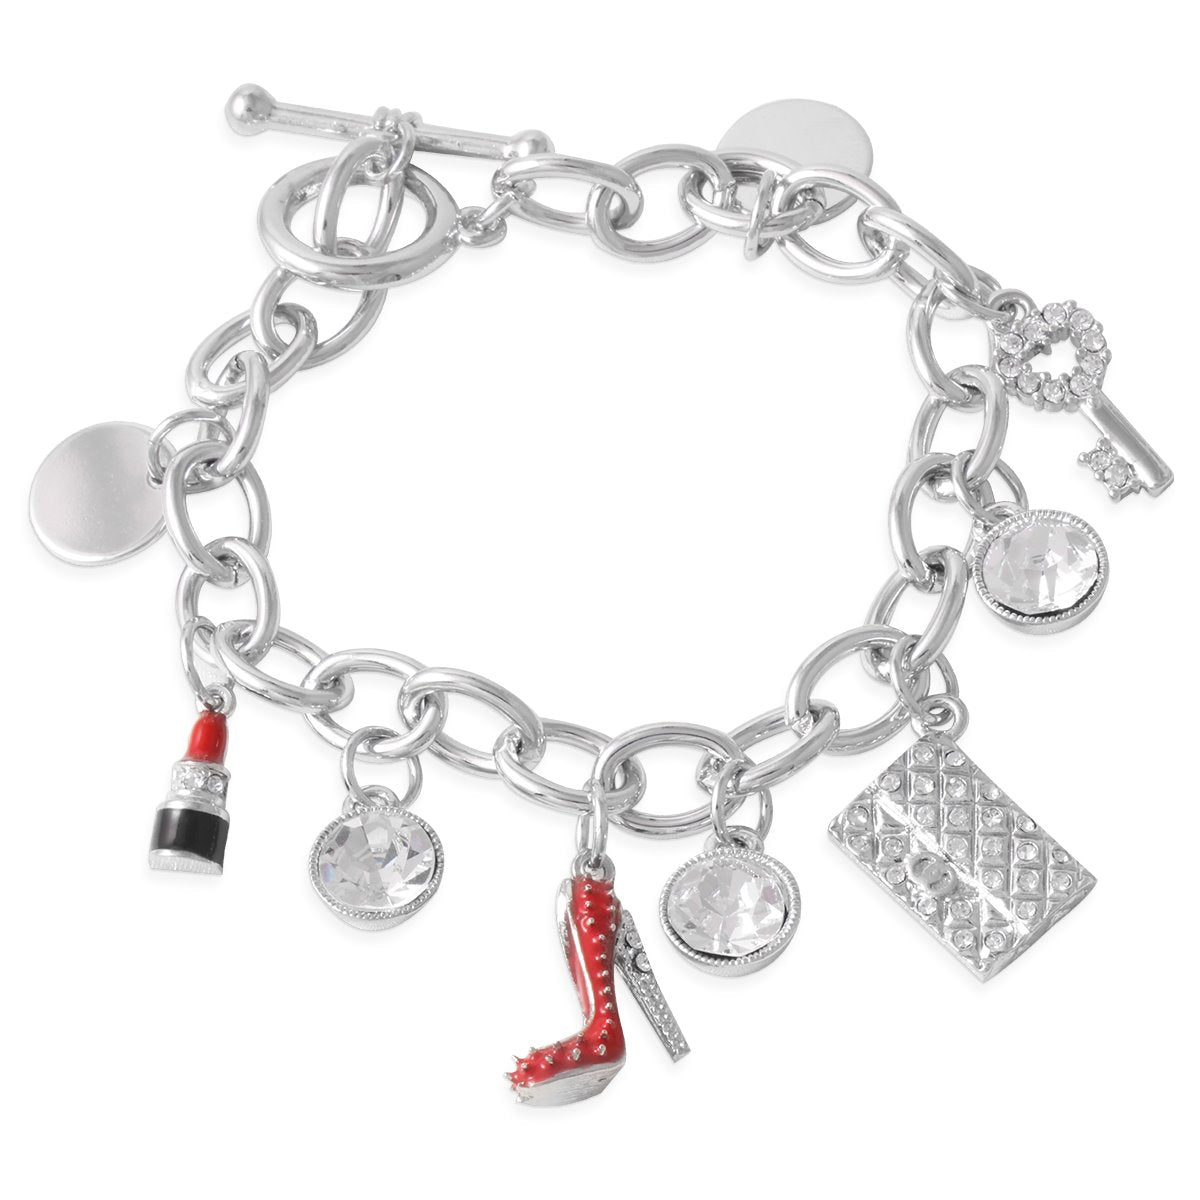 Celebrating Women Charm Bracelet forevercrystals